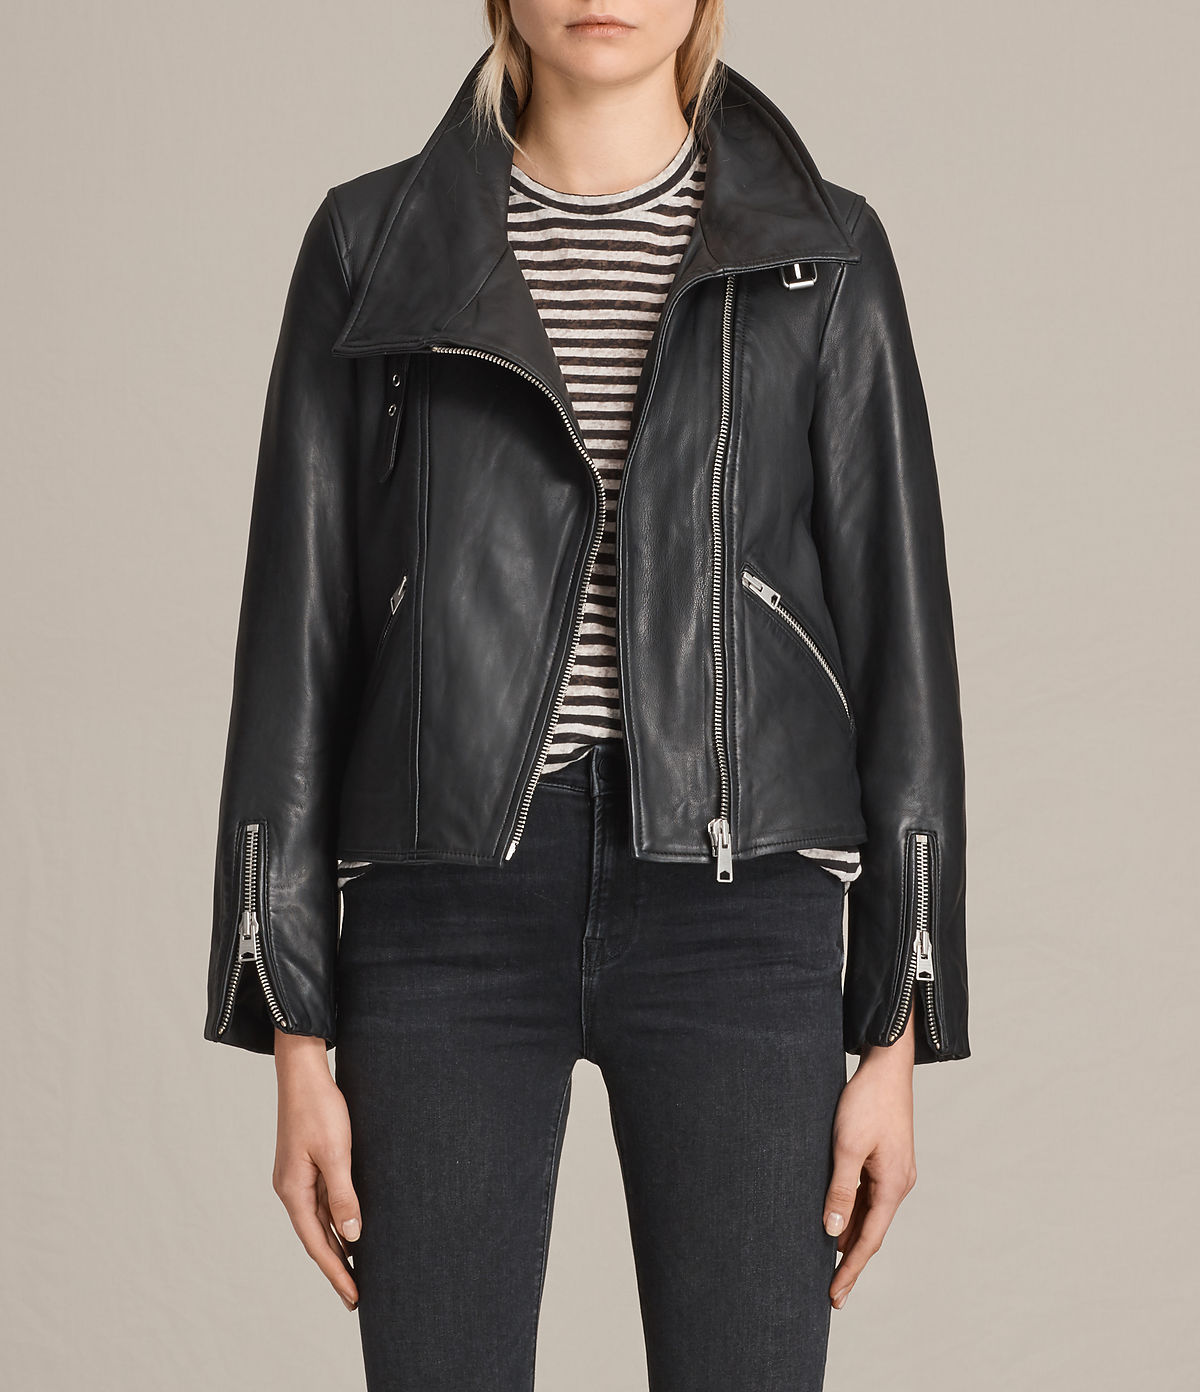 ALLSAINTS US: Leather jackets for women, shop now.